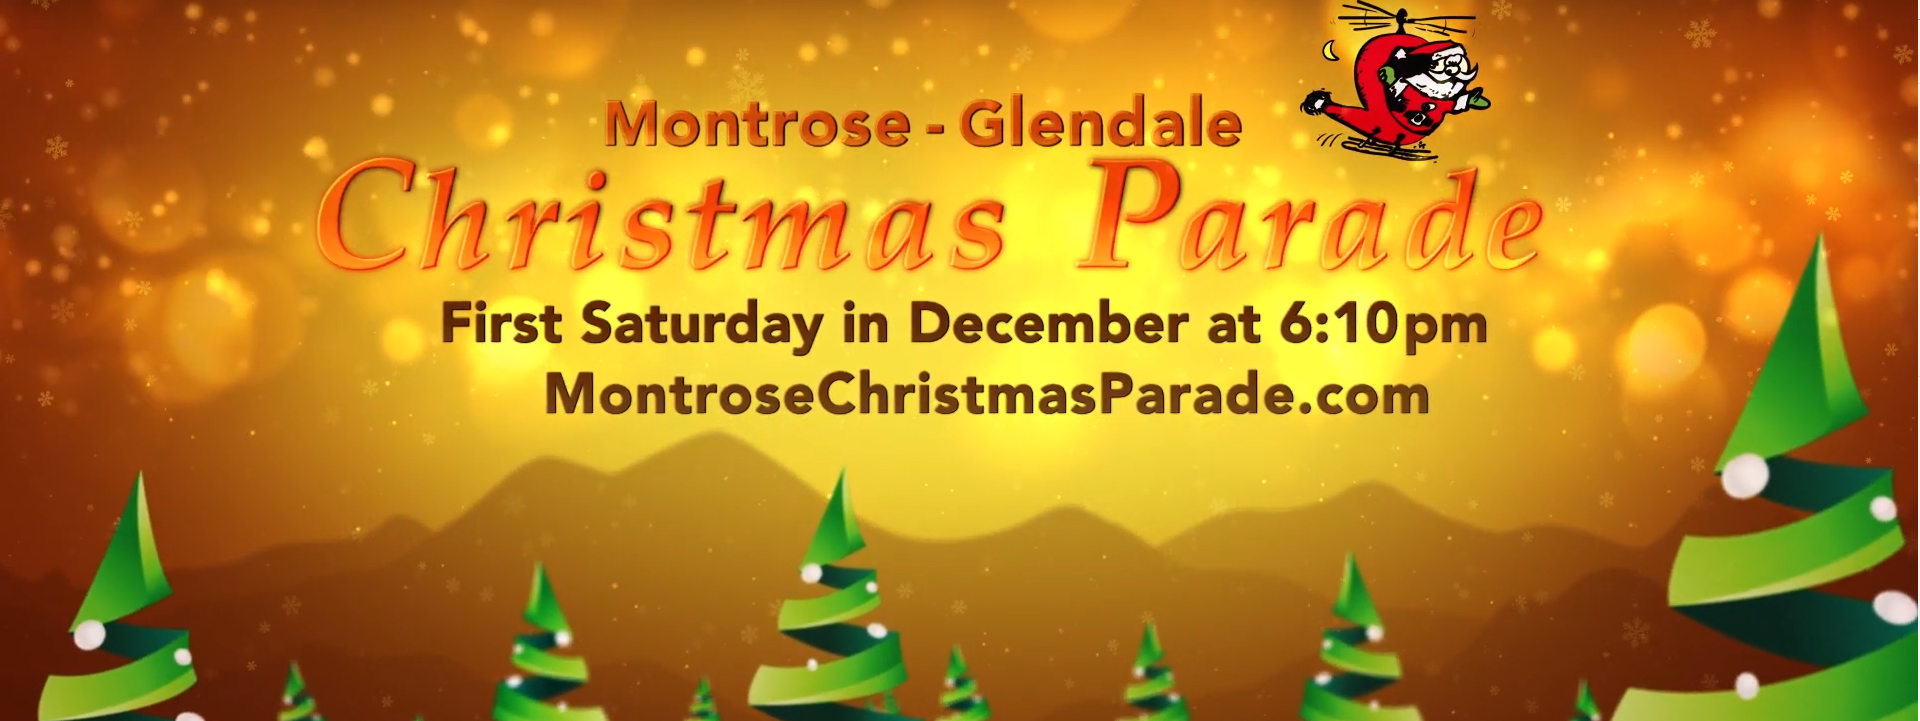 Montrose Christmas Parade 2020 Montrose Christmas Parade Association |